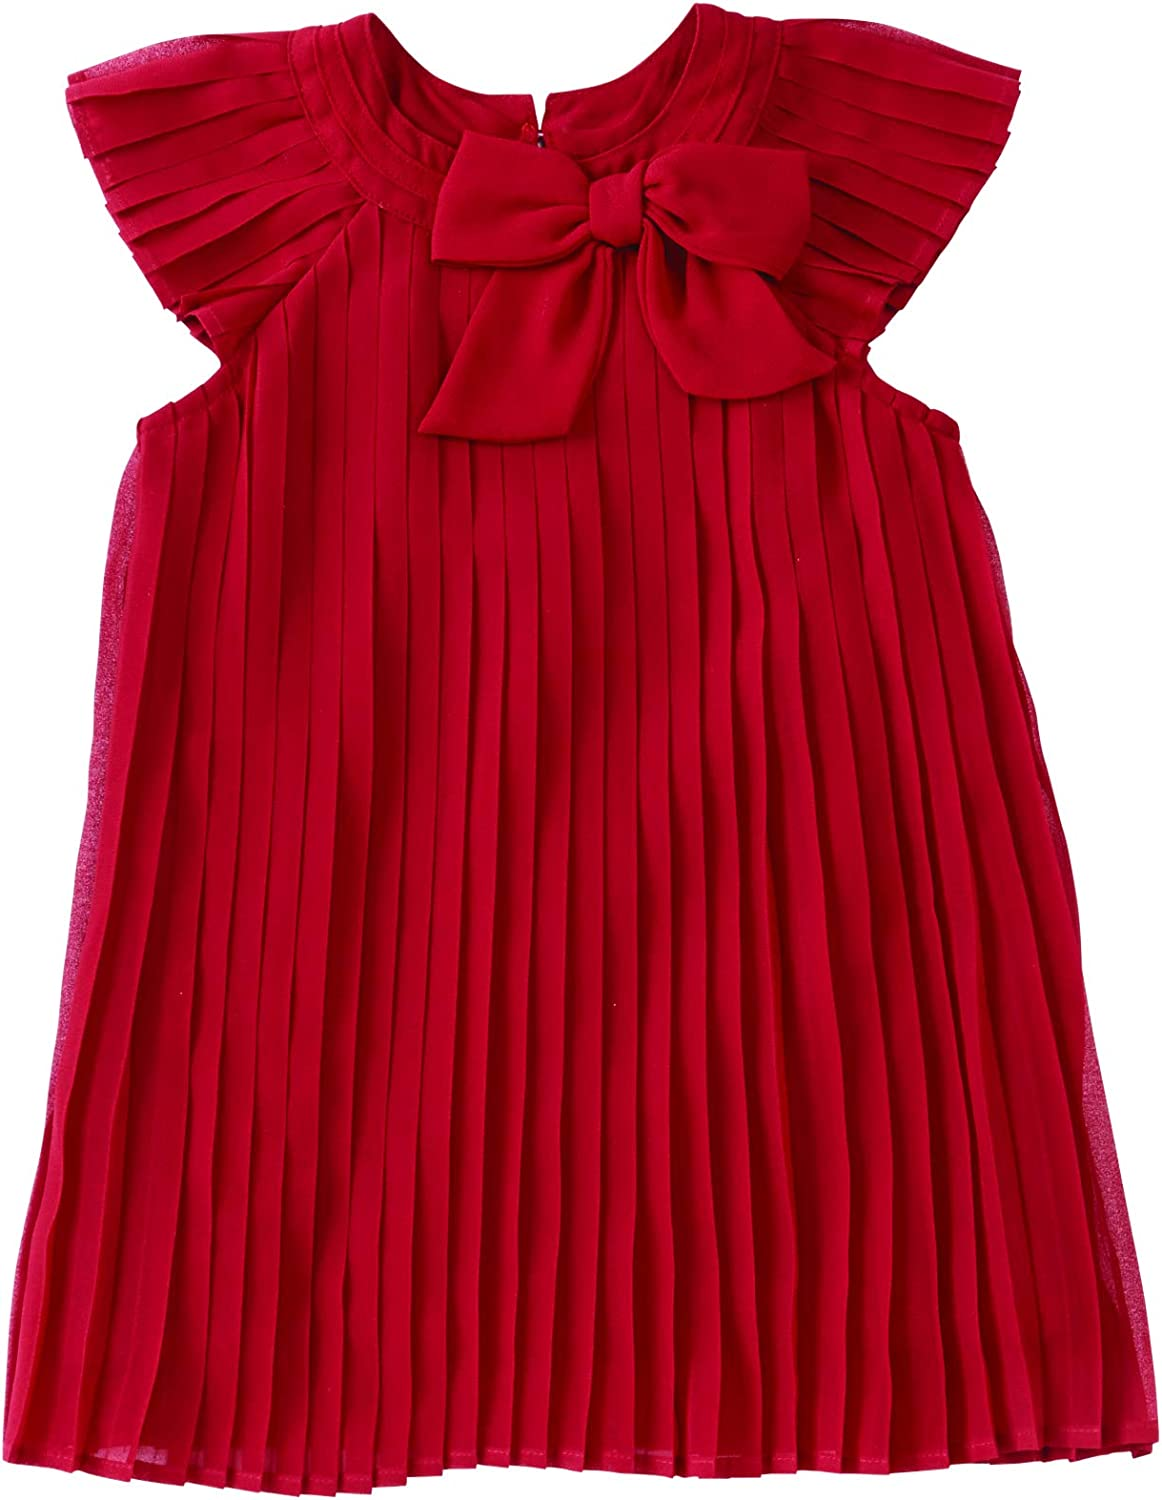 Mud Deluxe Pie Super special price Baby Girls' Claret Sleeveless Pleated Dress Ruffle